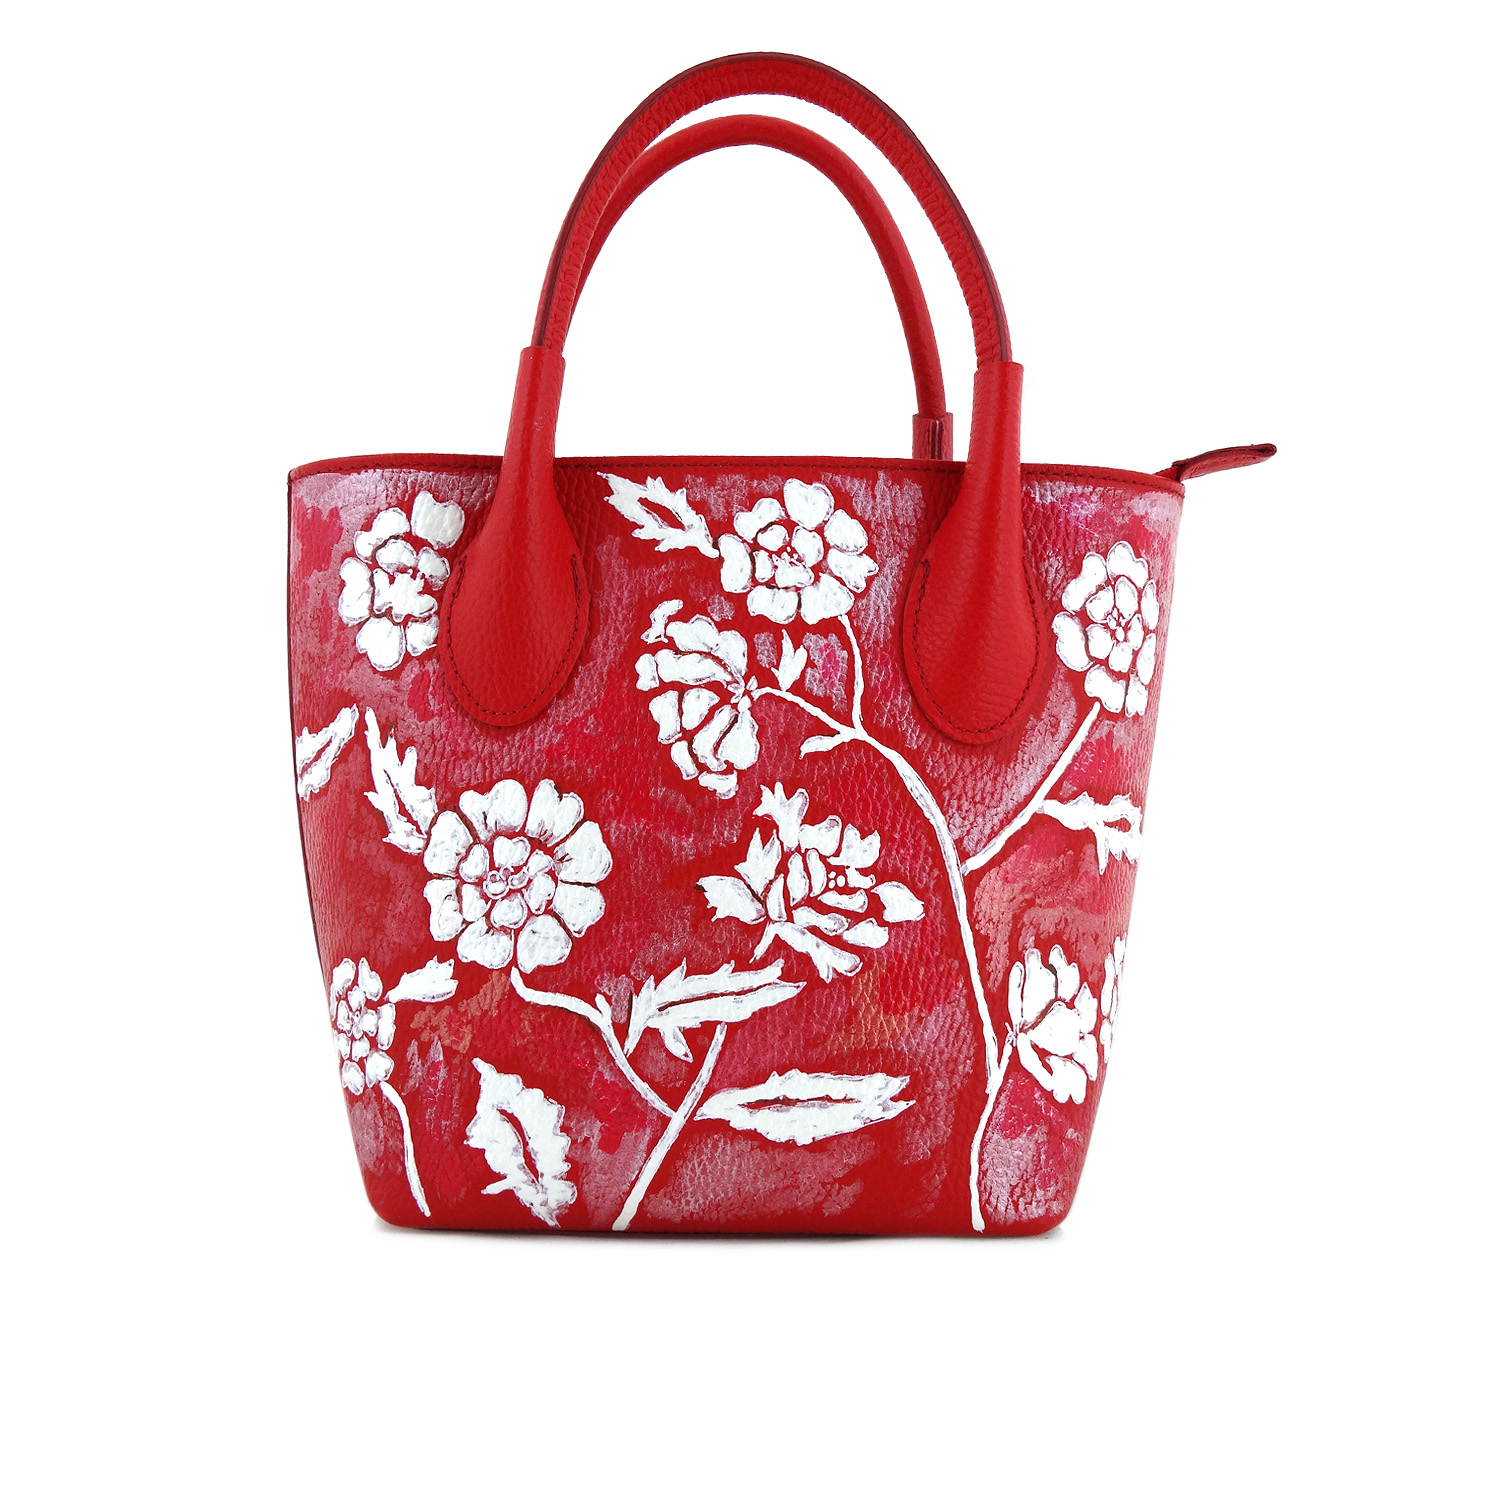 Hand painted bag - White on red